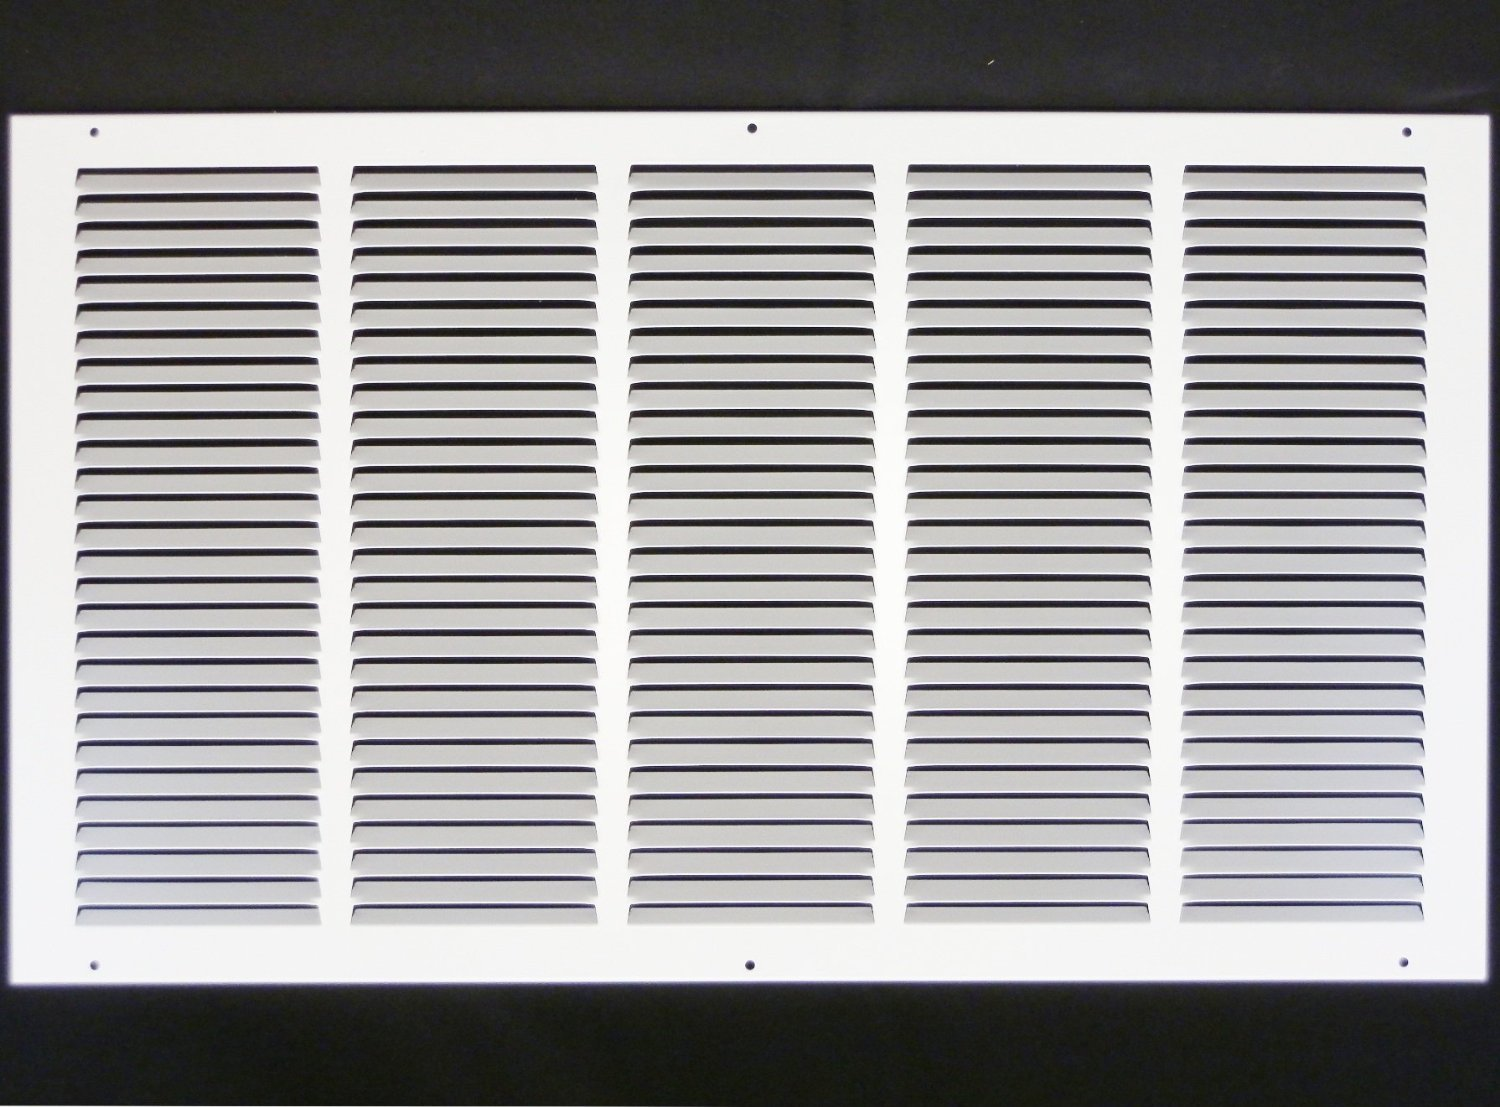 25''w X 14''h Steel Return Air Grilles - Sidewall and Cieling - HVAC DUCT COVER - White [Outer Dimensions: 26.75''w X 15.75''h]